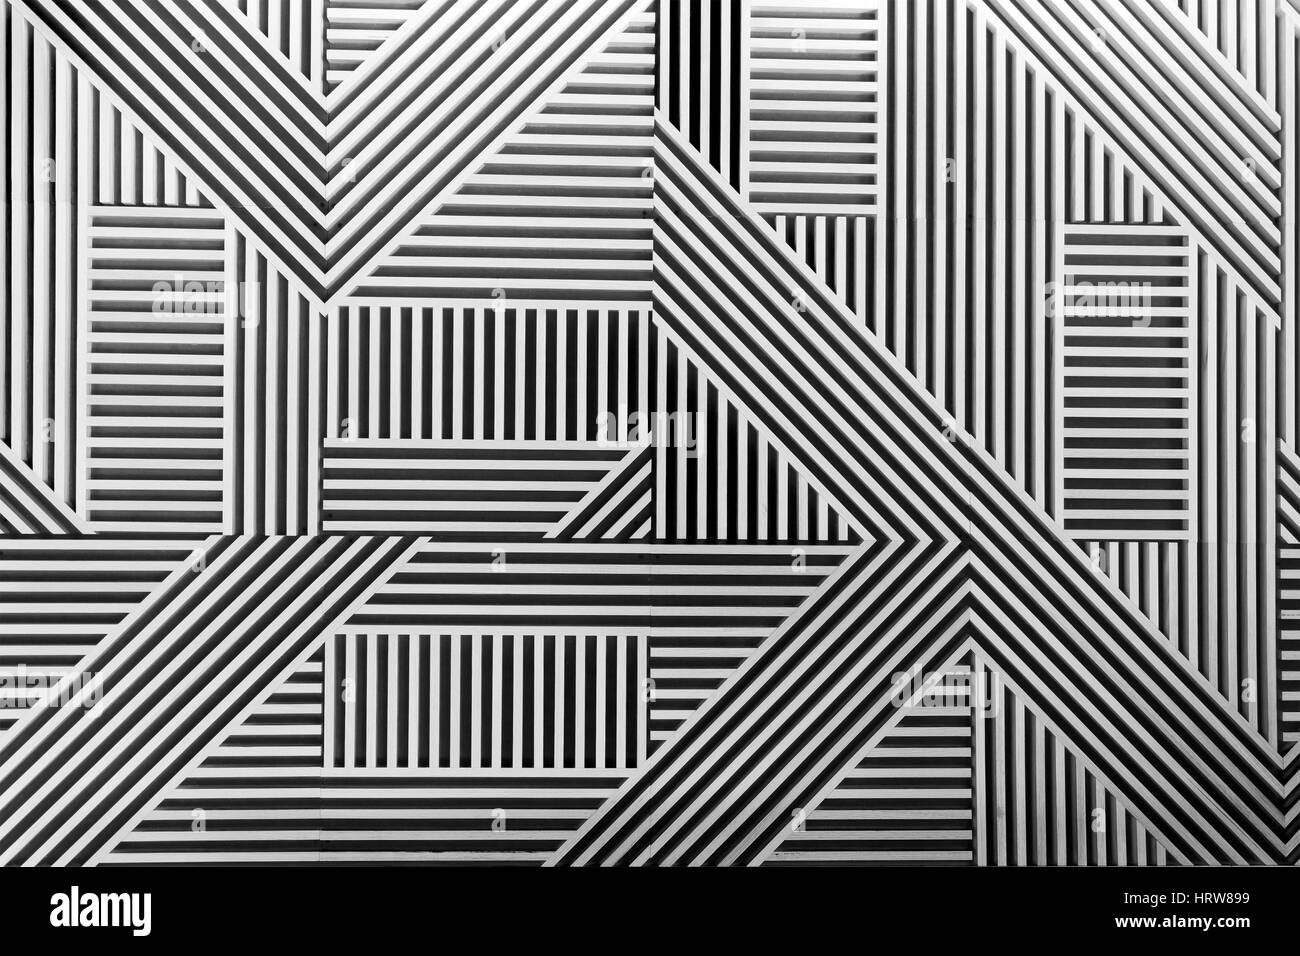 Timber decoration panel converted to black-white to highlight structure and texture of interior detail. - Stock Image